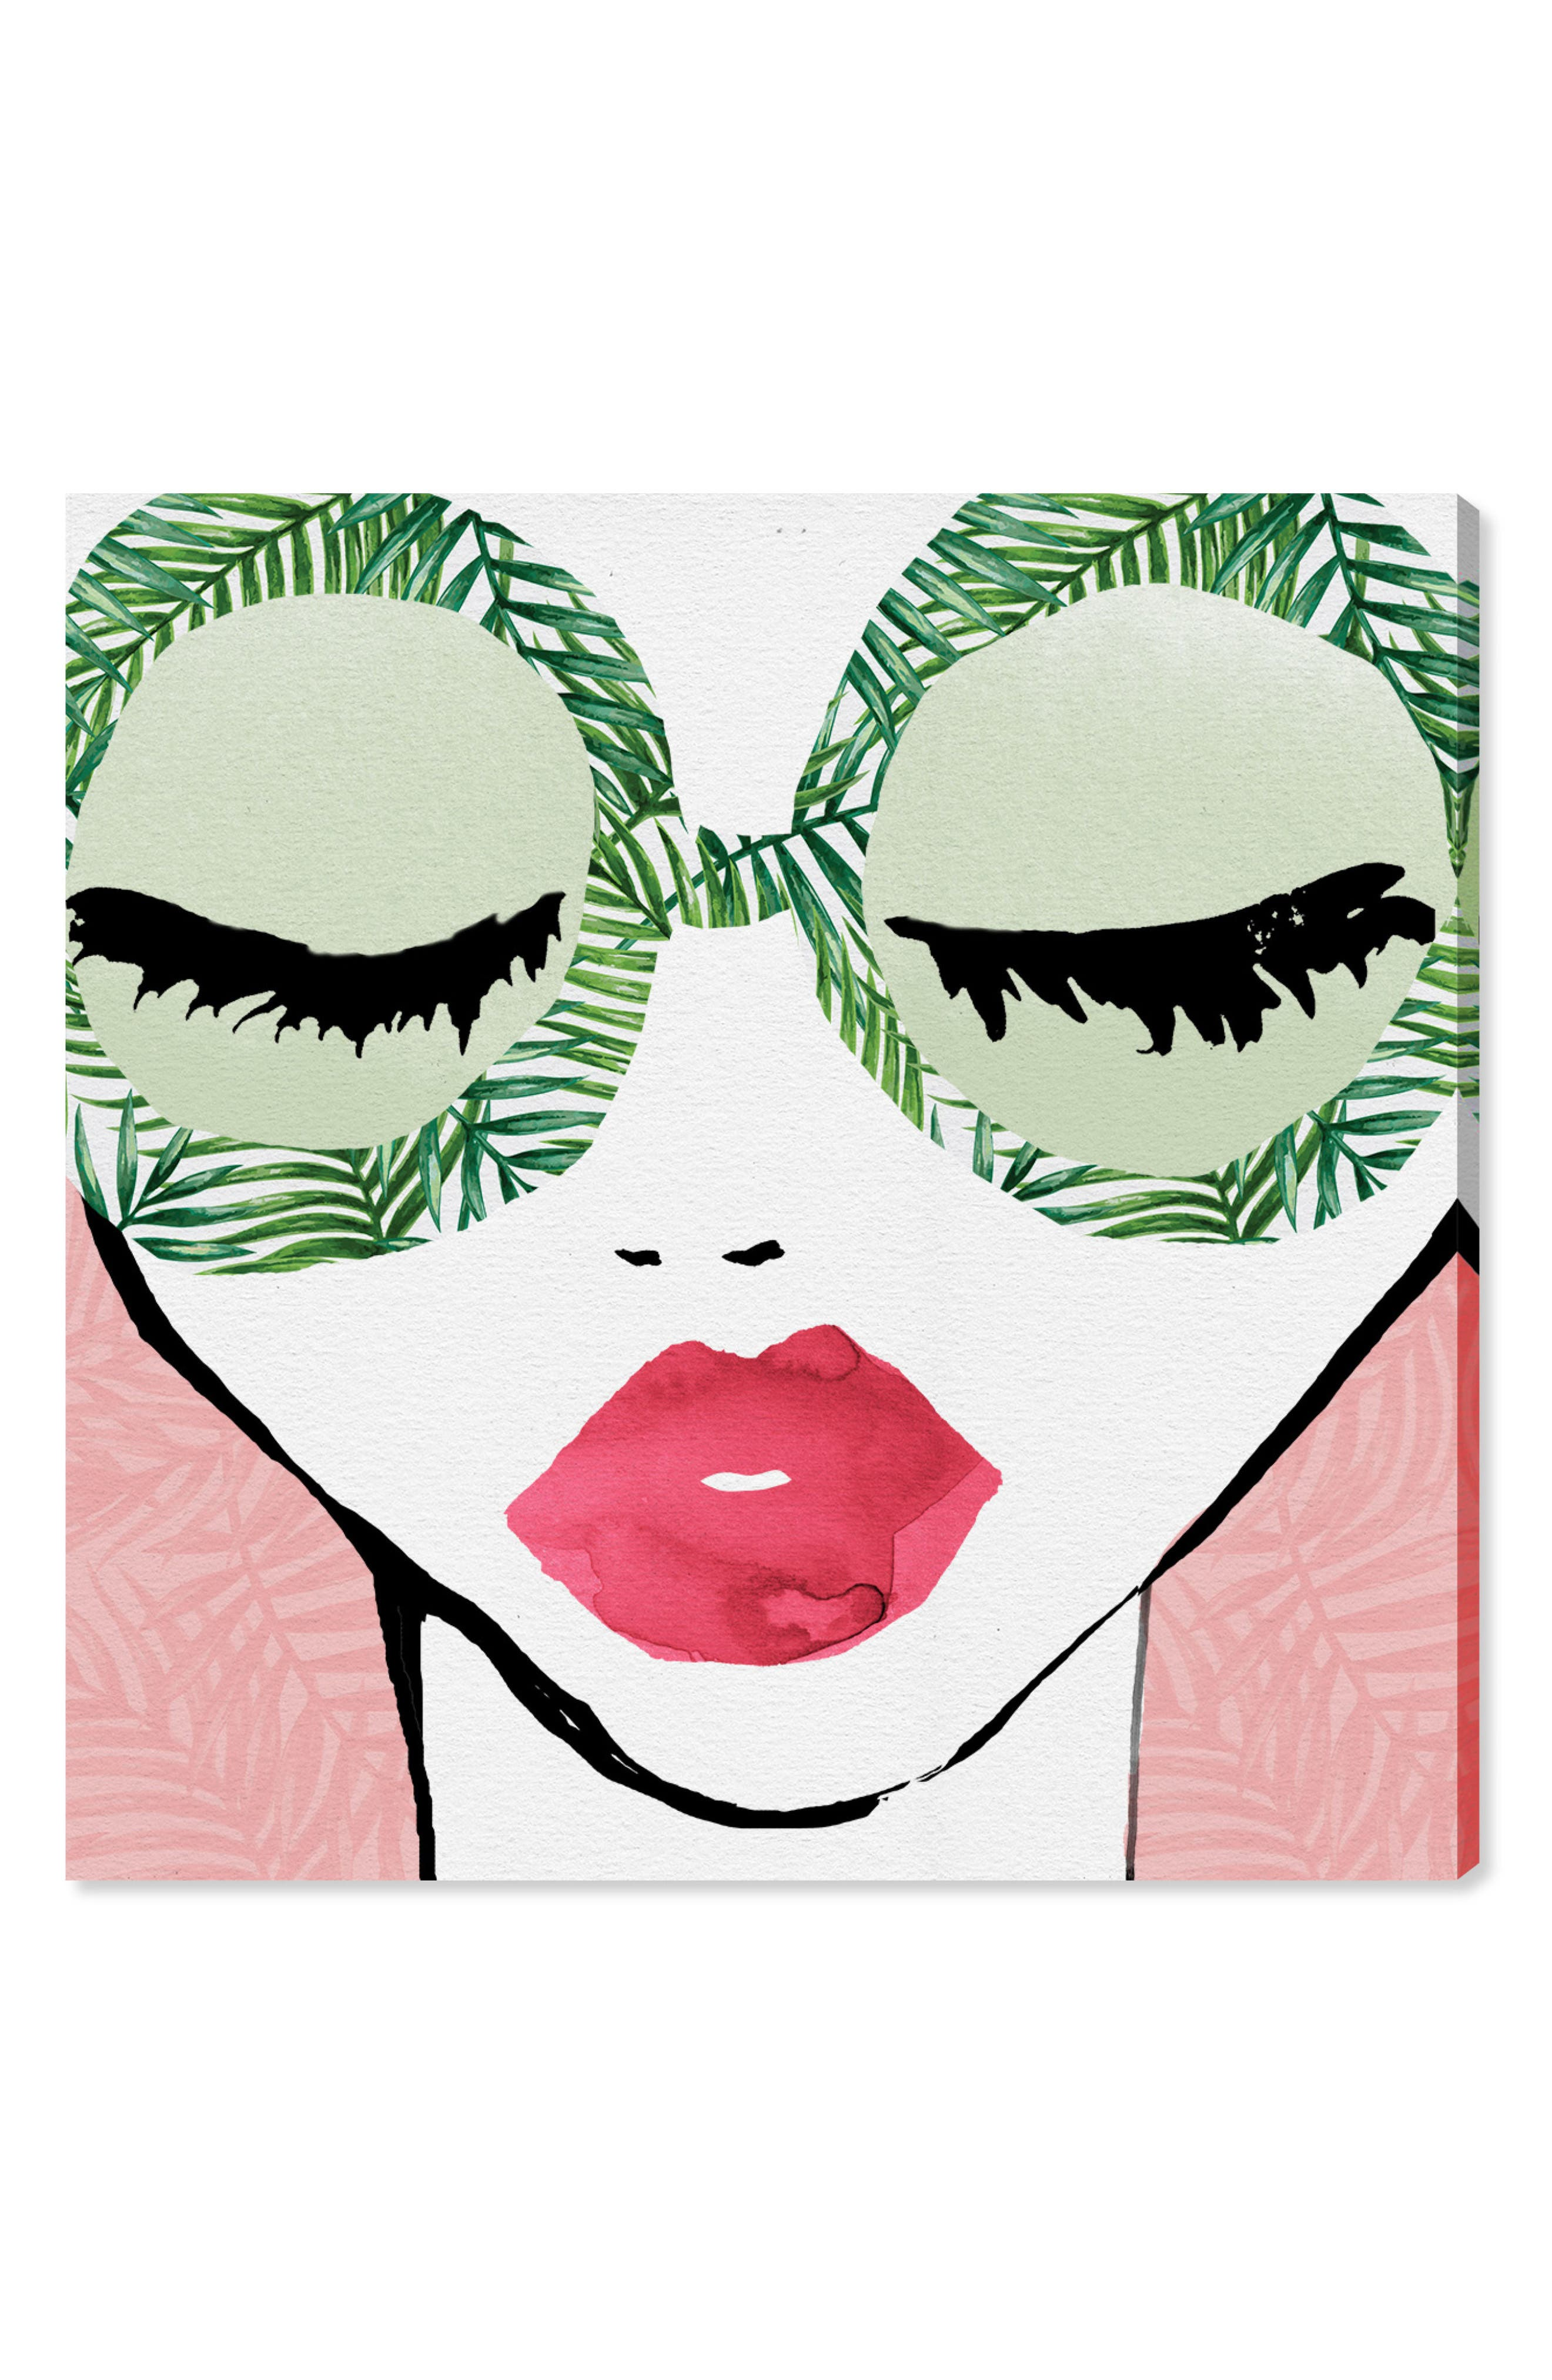 Oliver Gal Plant Lady Glasses Canvas Wall Art